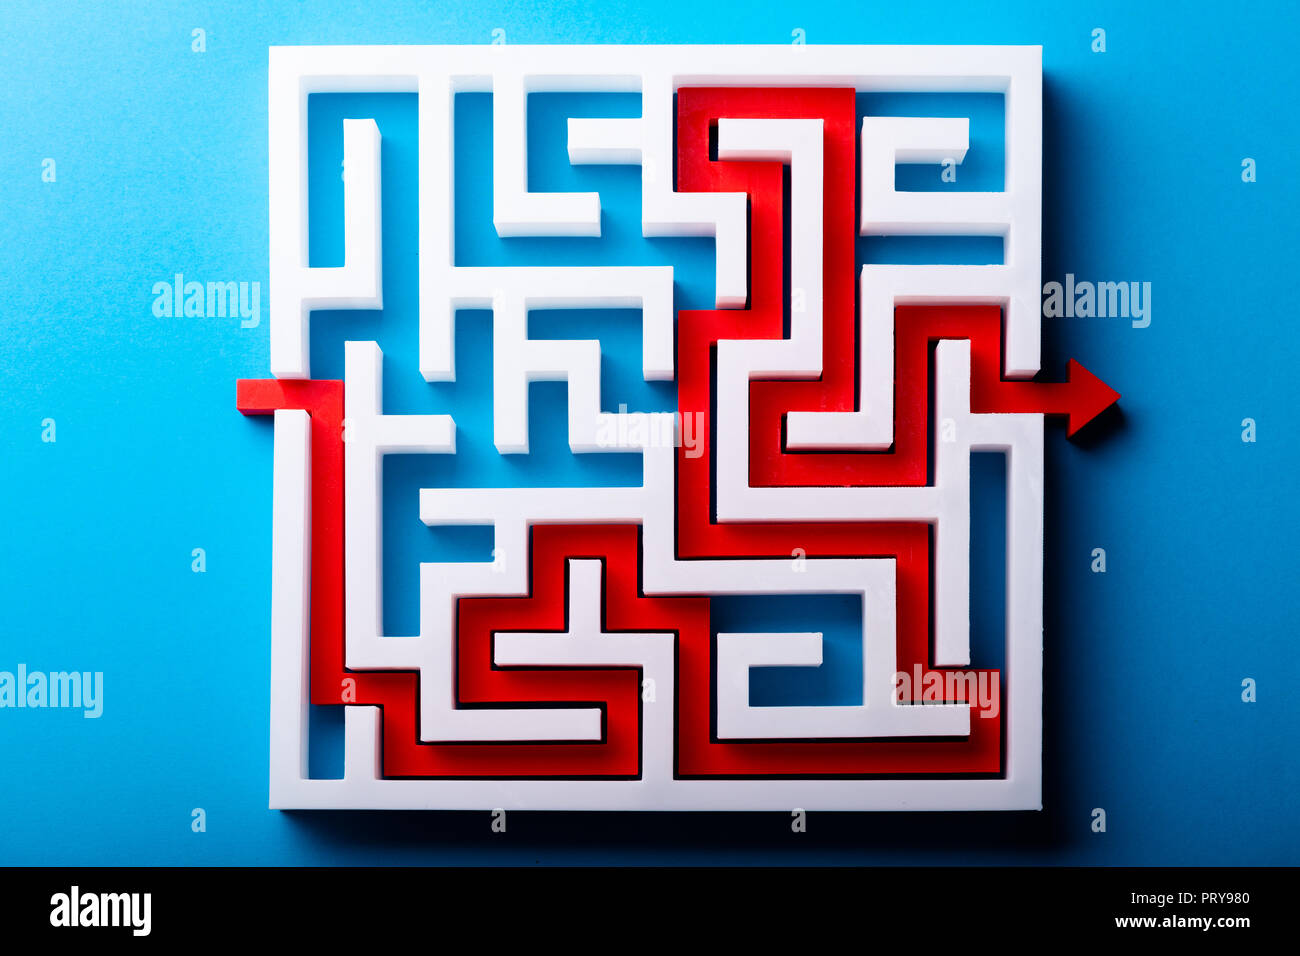 High Angle View Of Red Arrow Showing Path Through Maze On Blue Background - Stock Image